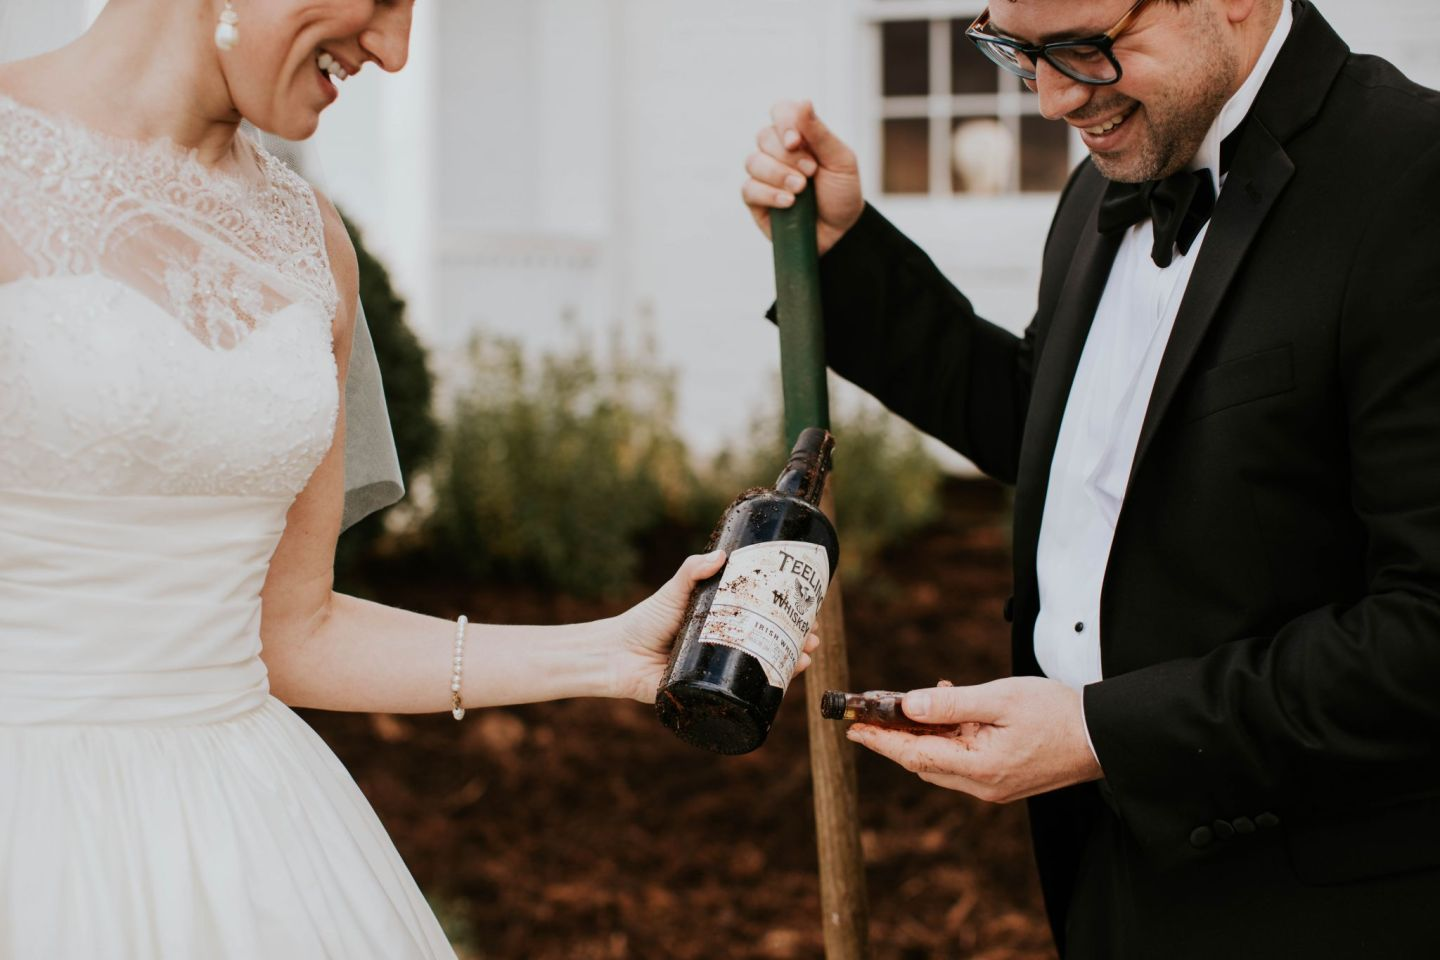 burying the bourbon - southern wedding traditions - farmhouse at veritas wedding